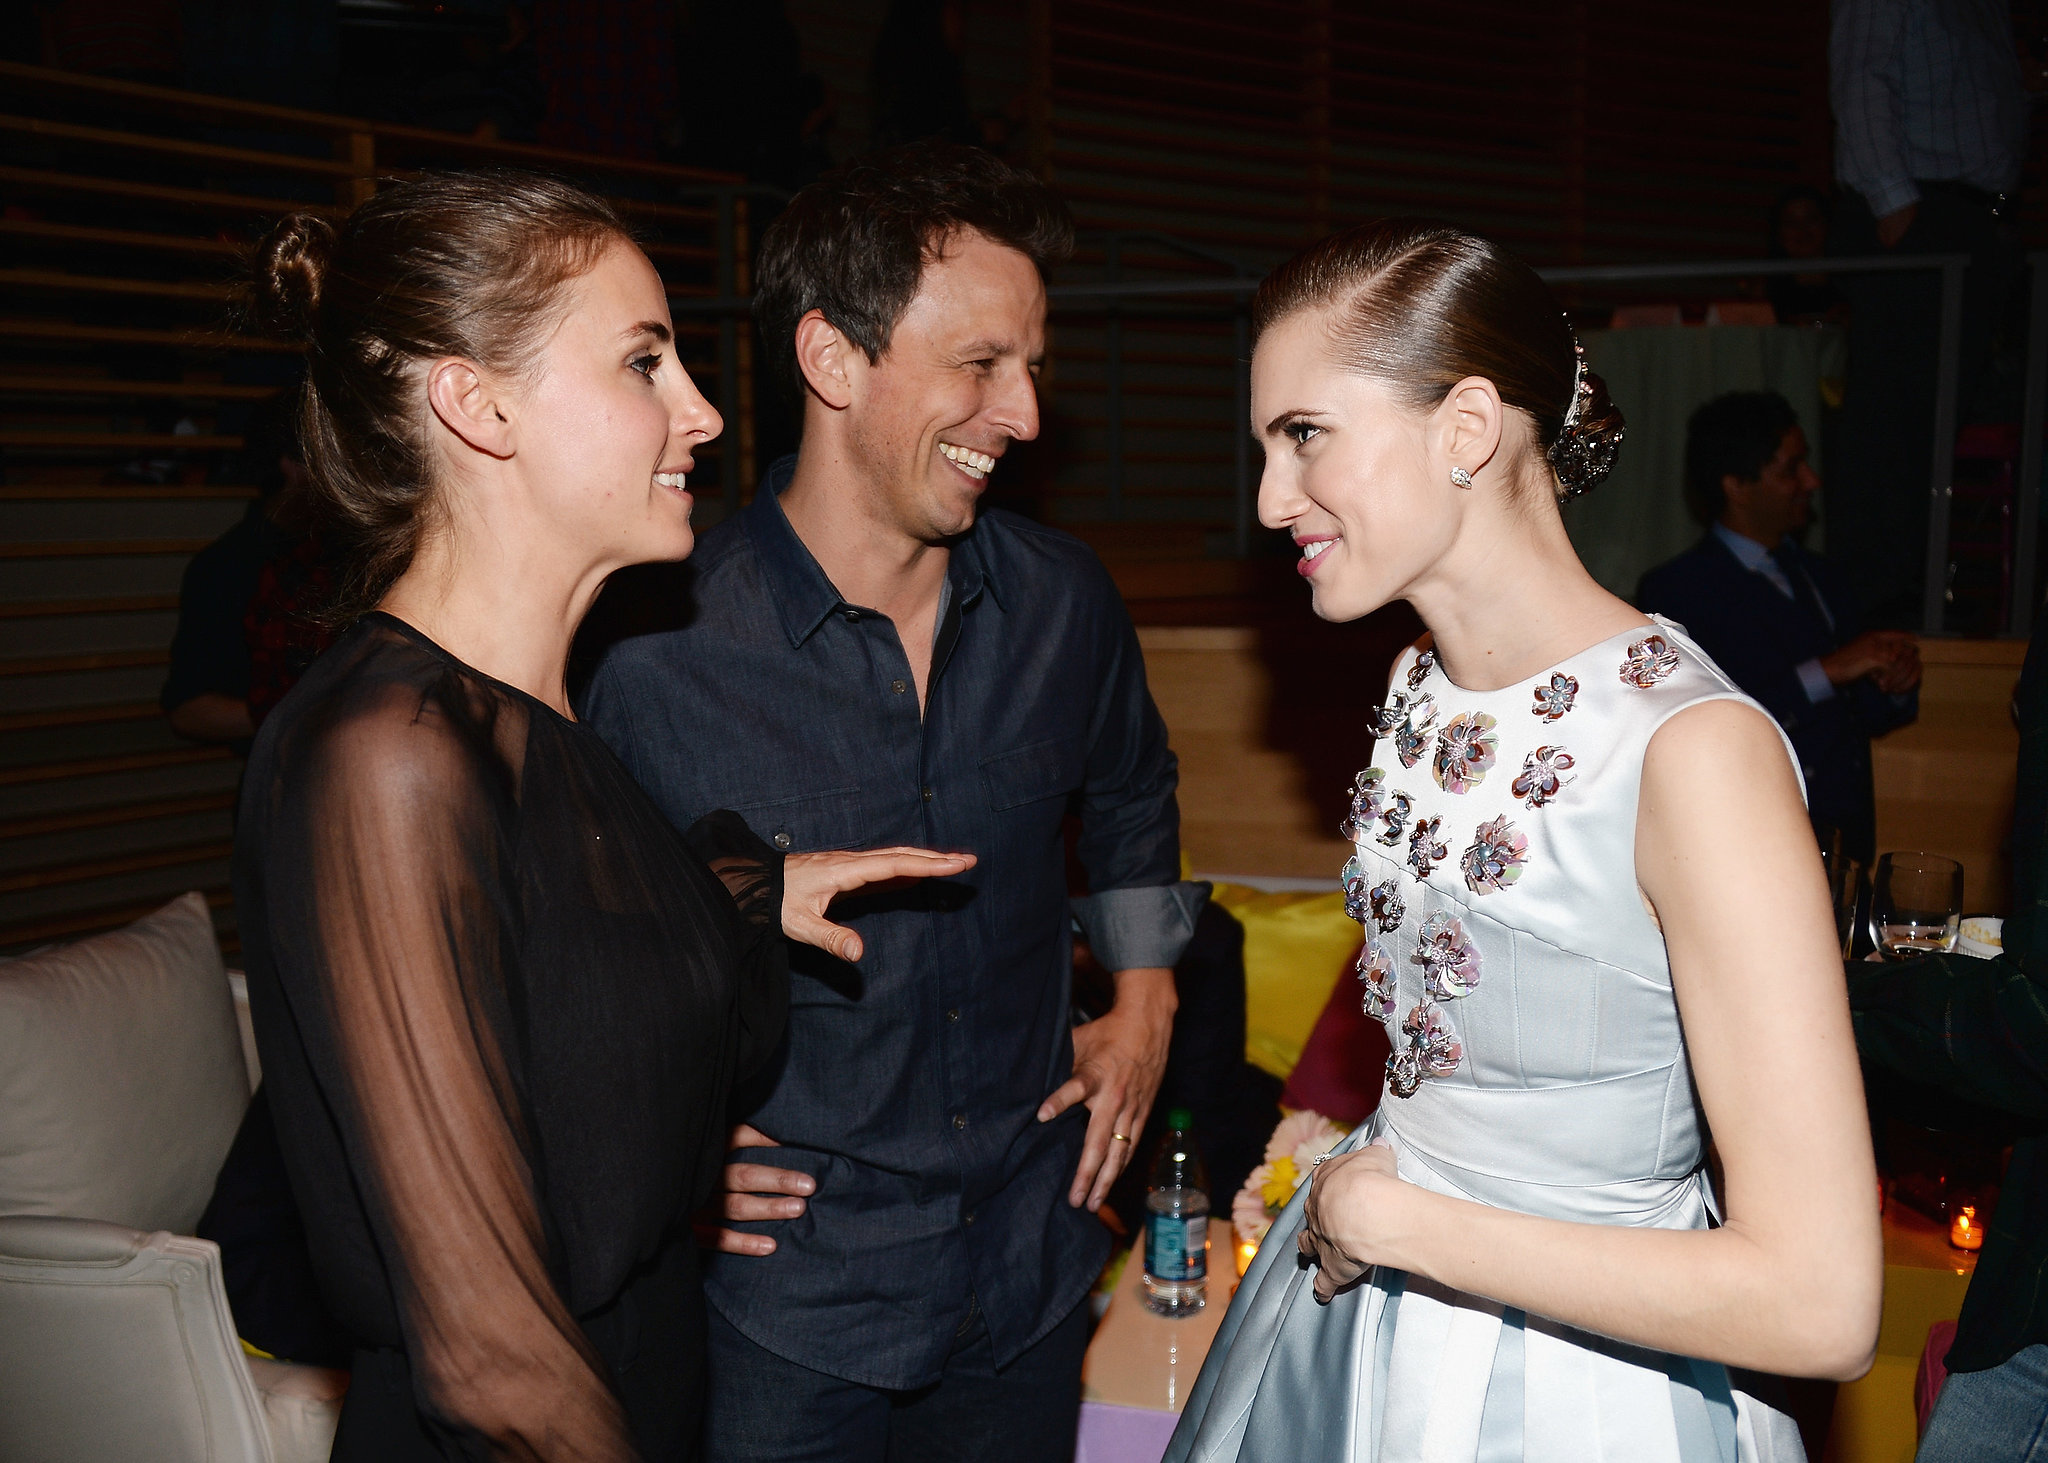 Allison chatted with Seth Meyers and his wife, Alexi Ashe.